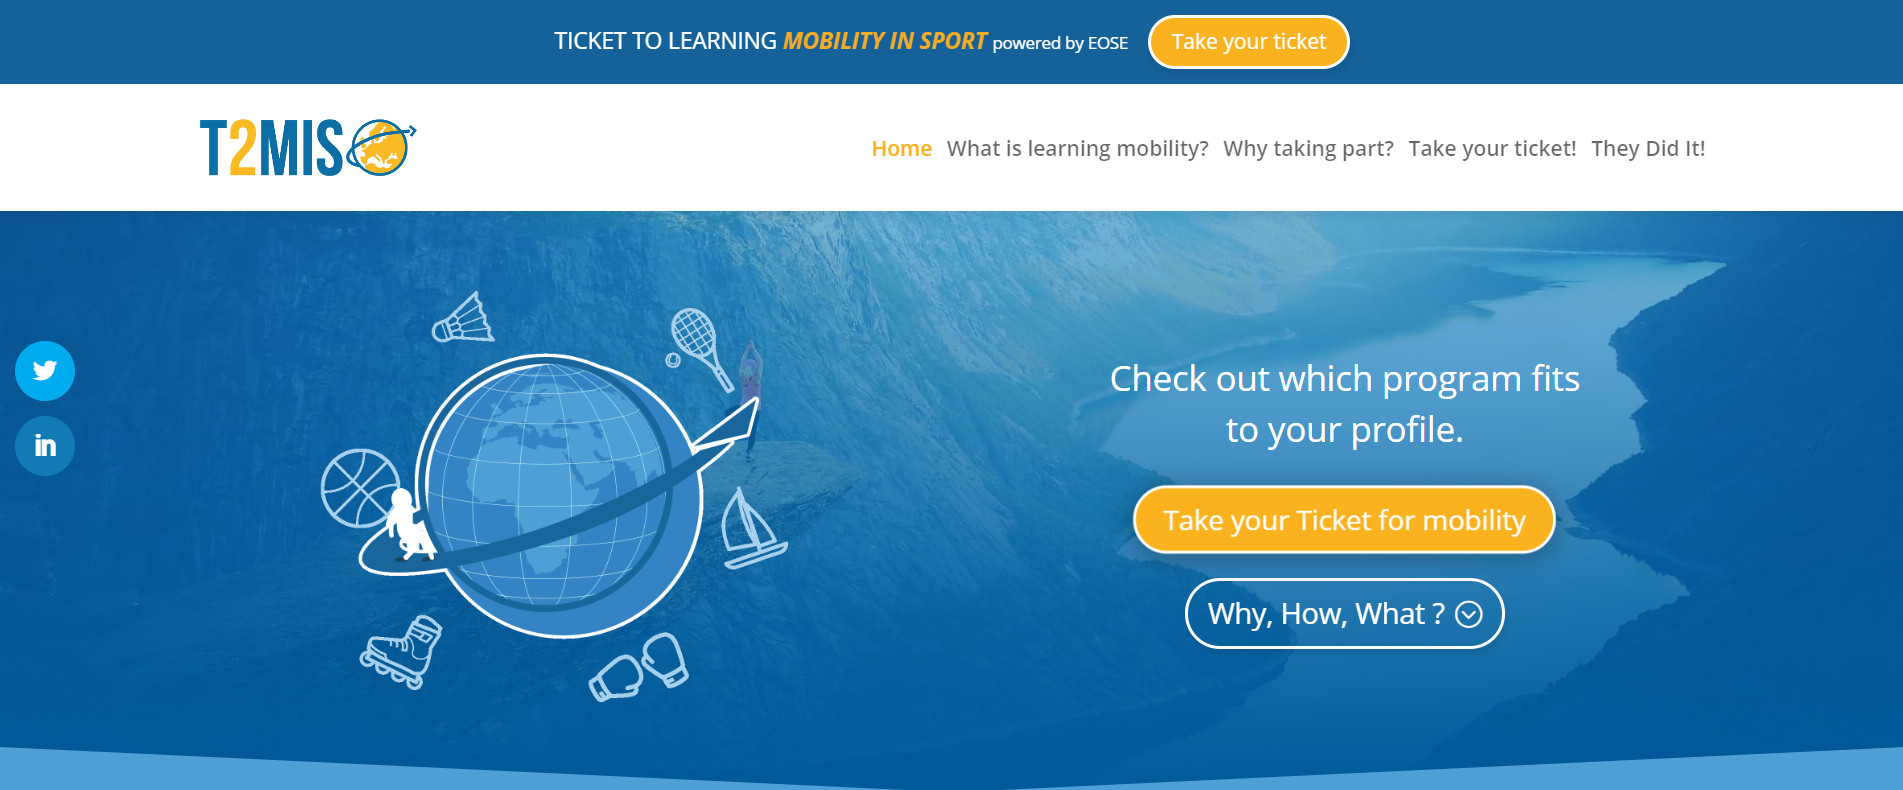 Supporting learning mobility in sport and physical activity